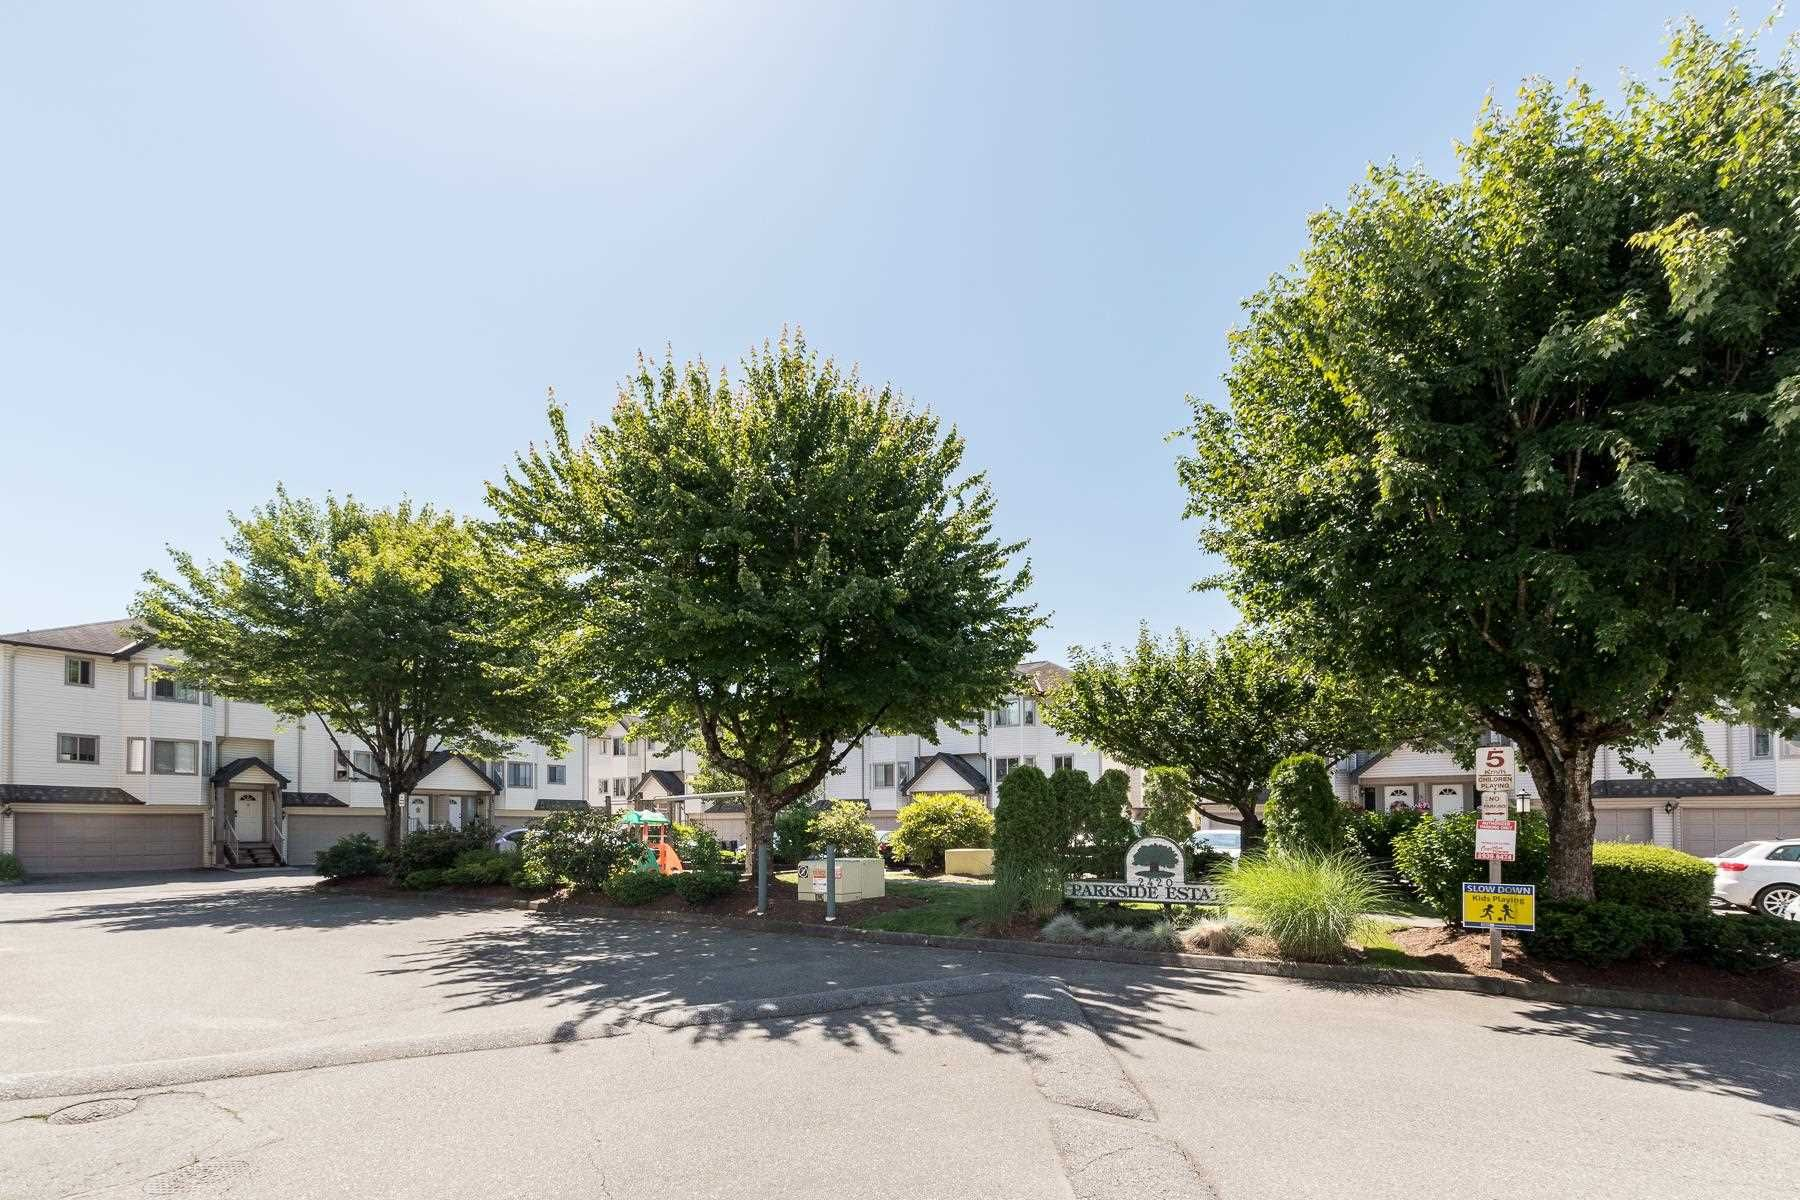 """Main Photo: 12 2420 PITT RIVER Road in Port Coquitlam: Mary Hill Townhouse for sale in """"PARKSIDE ESTRATA"""" : MLS®# R2596291"""